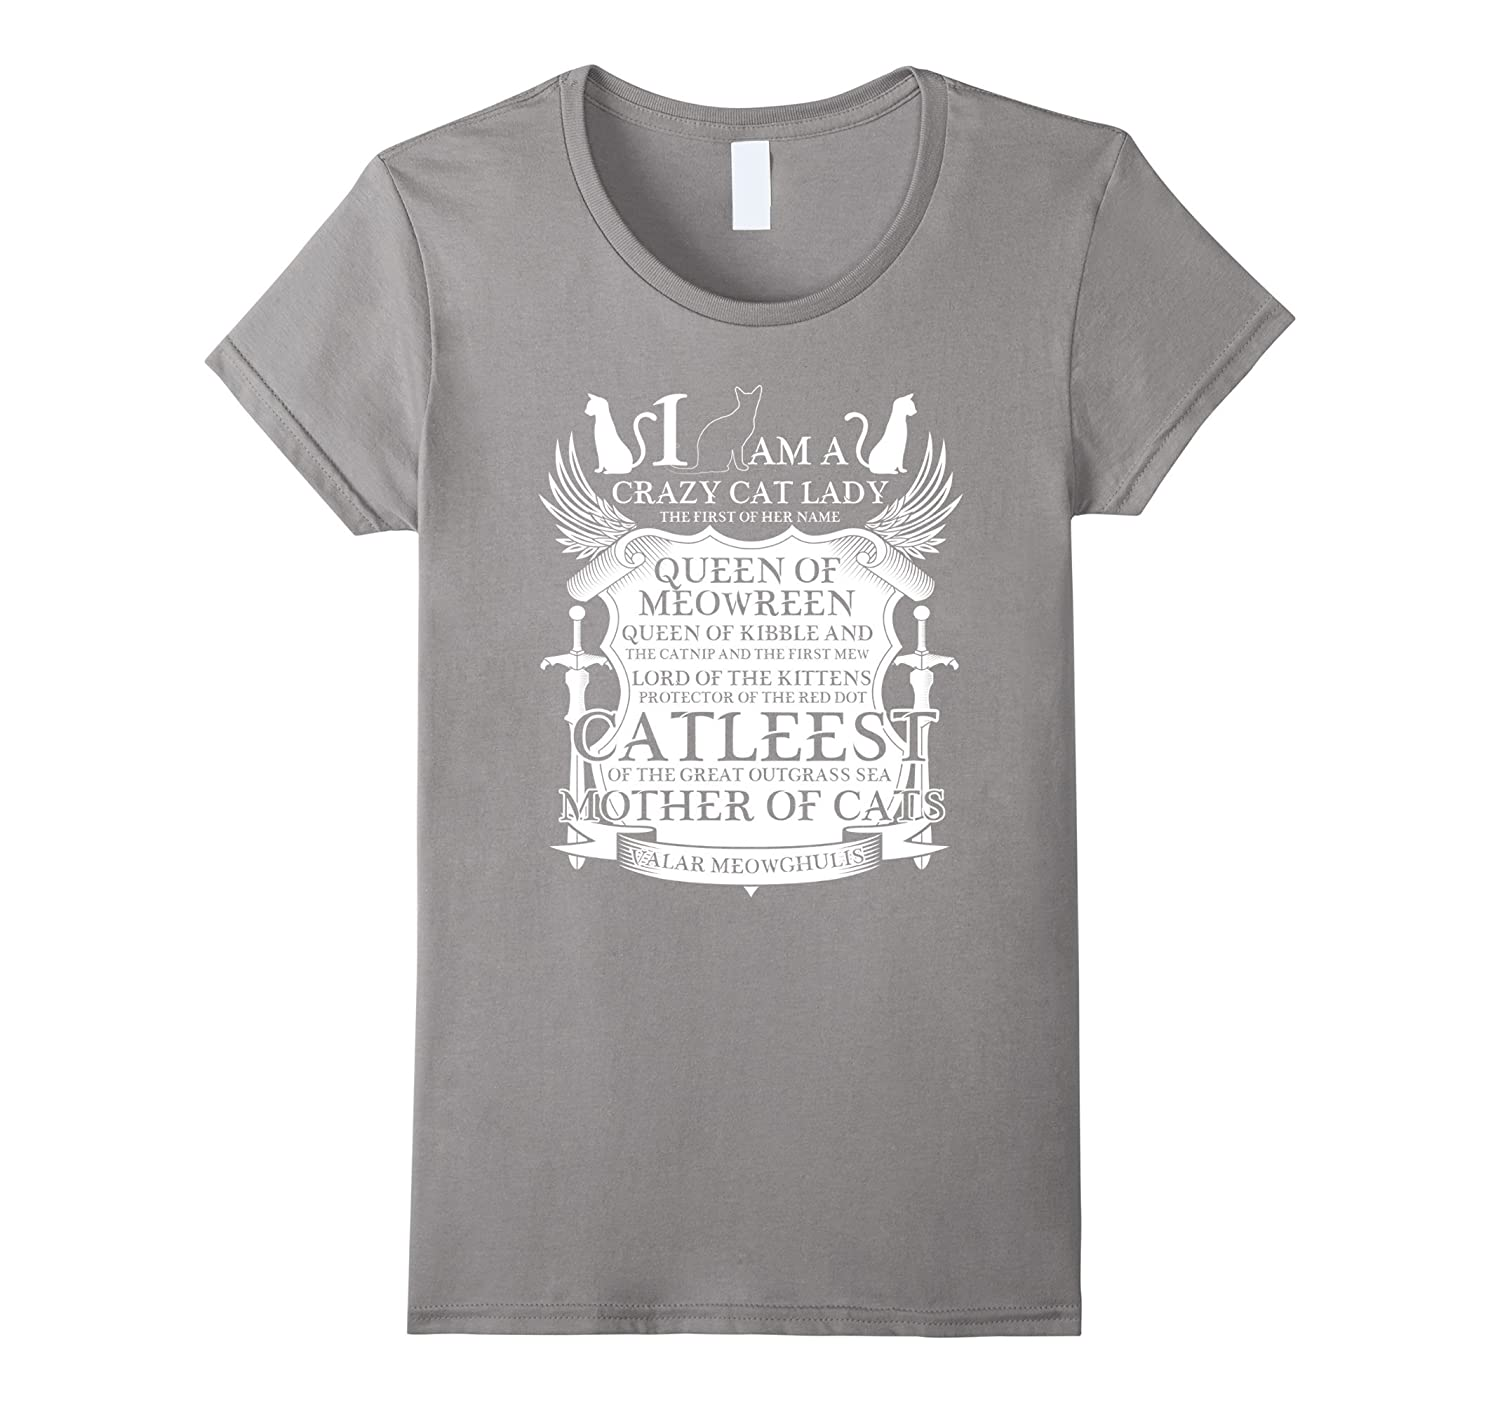 Women's I'm a Crazy Cat Lady Queen of Meowreen Lord of Kittens Mother of Cats Tshirt Gift Cat T-Shirt-CL